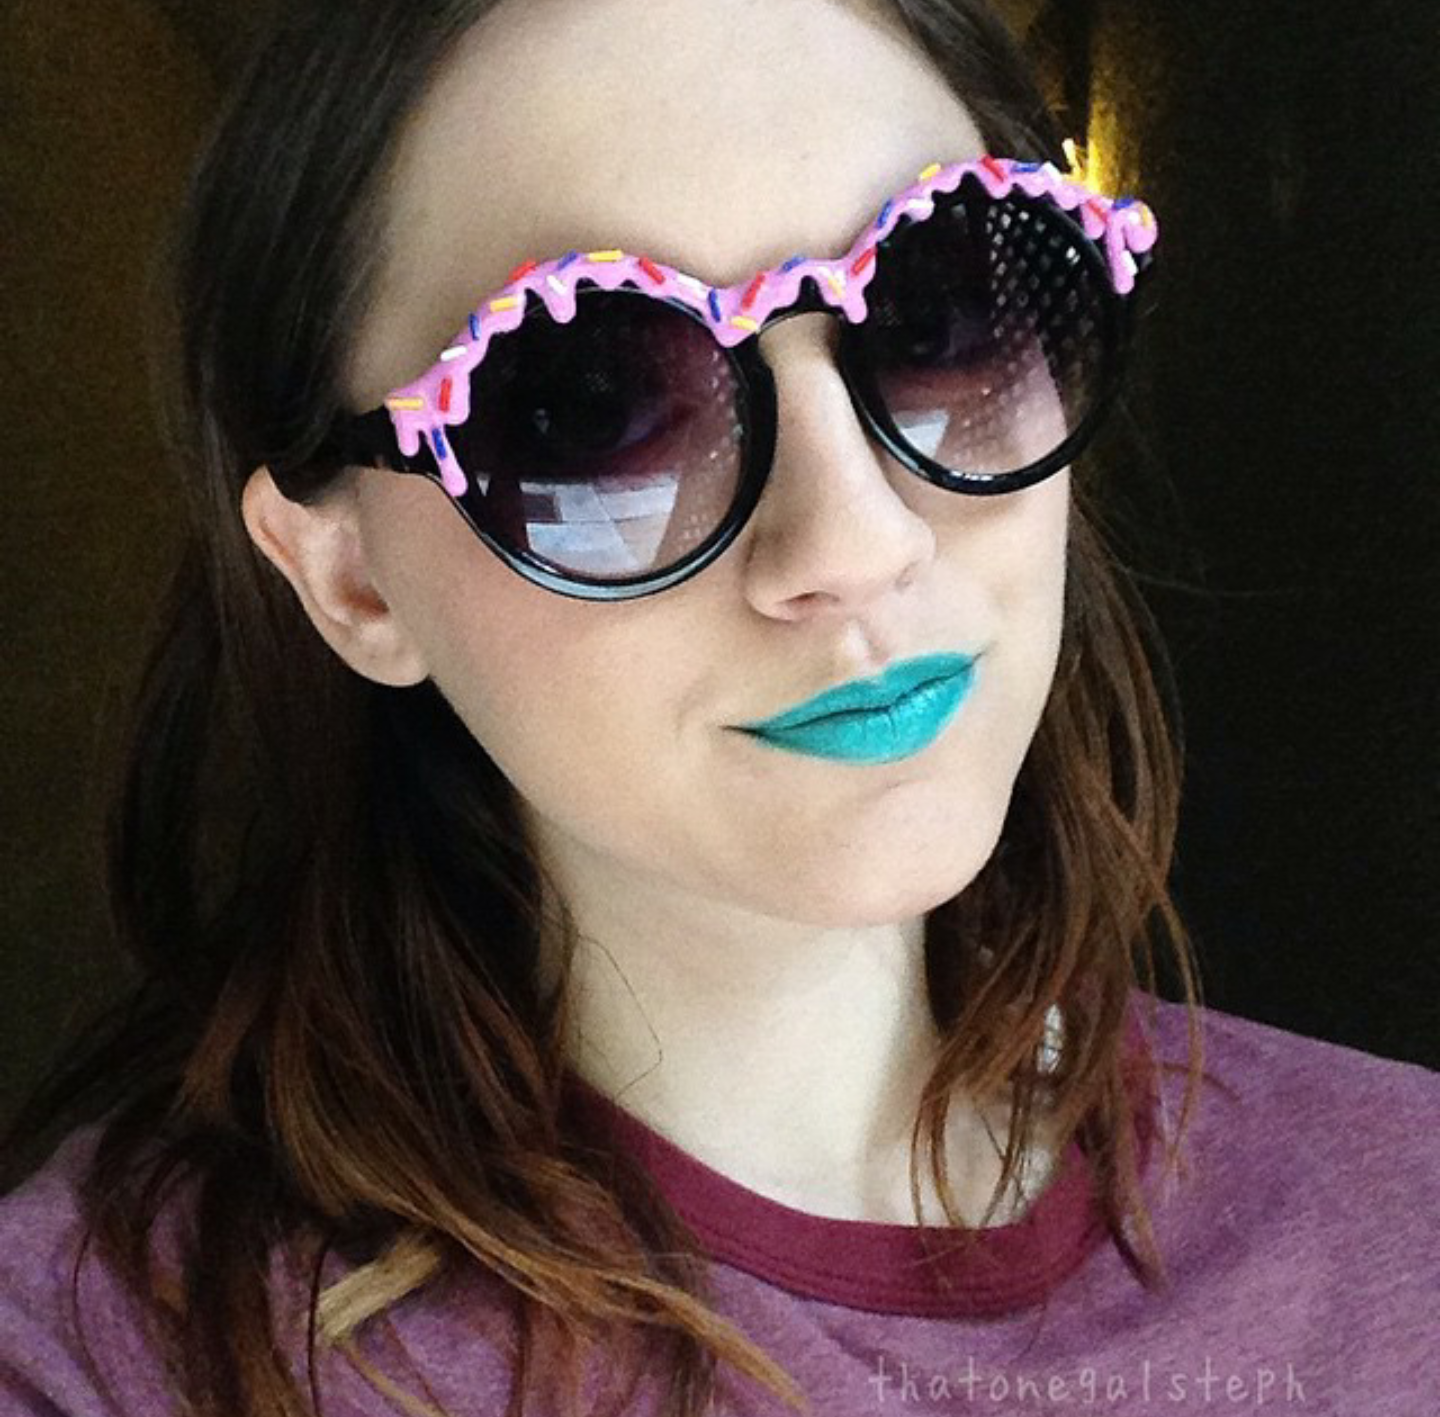 @thatonegalsteph rocking the pink with sprinkles doughnut sunglasses